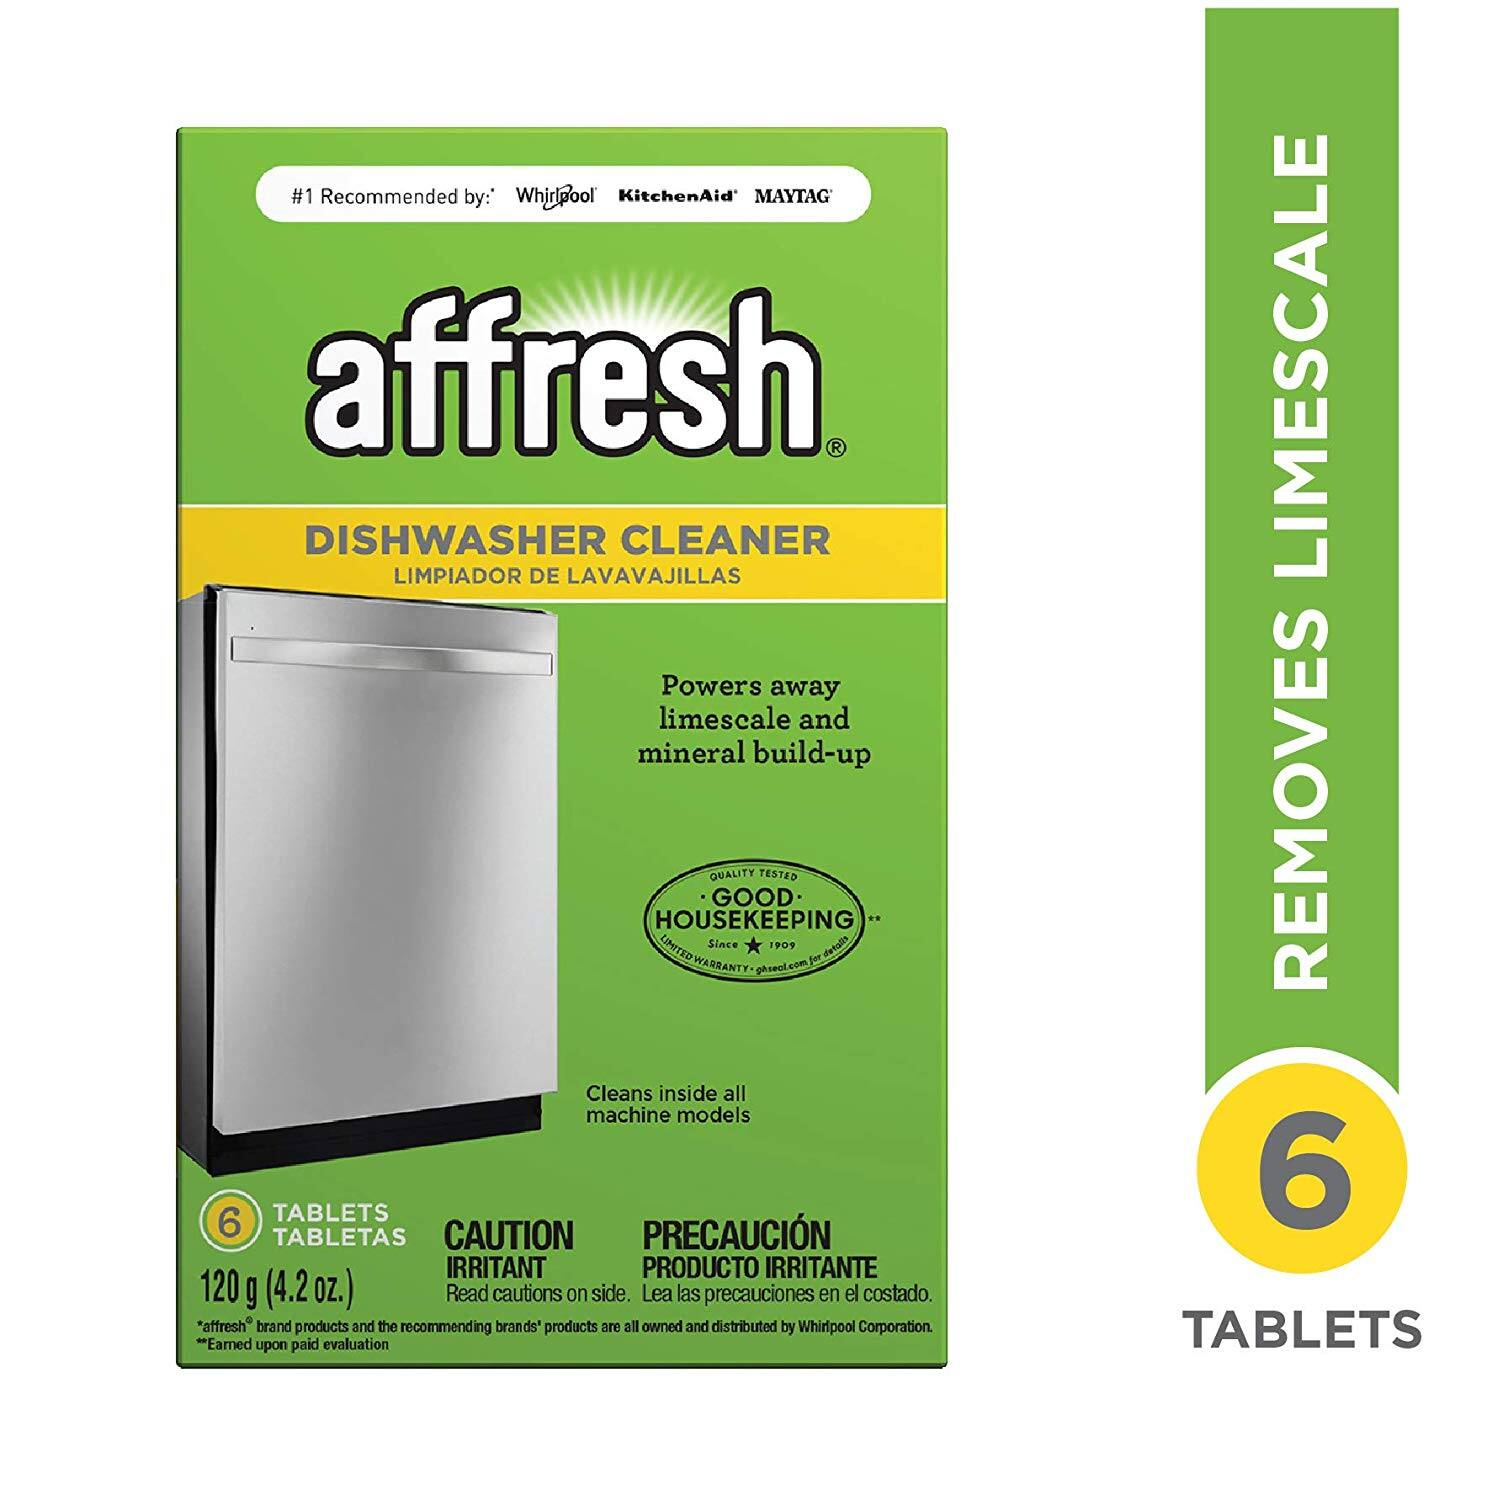 6-Count Affresh Dishwasher Cleaner Tablets $3.62 w/ S&S + Free Shipping